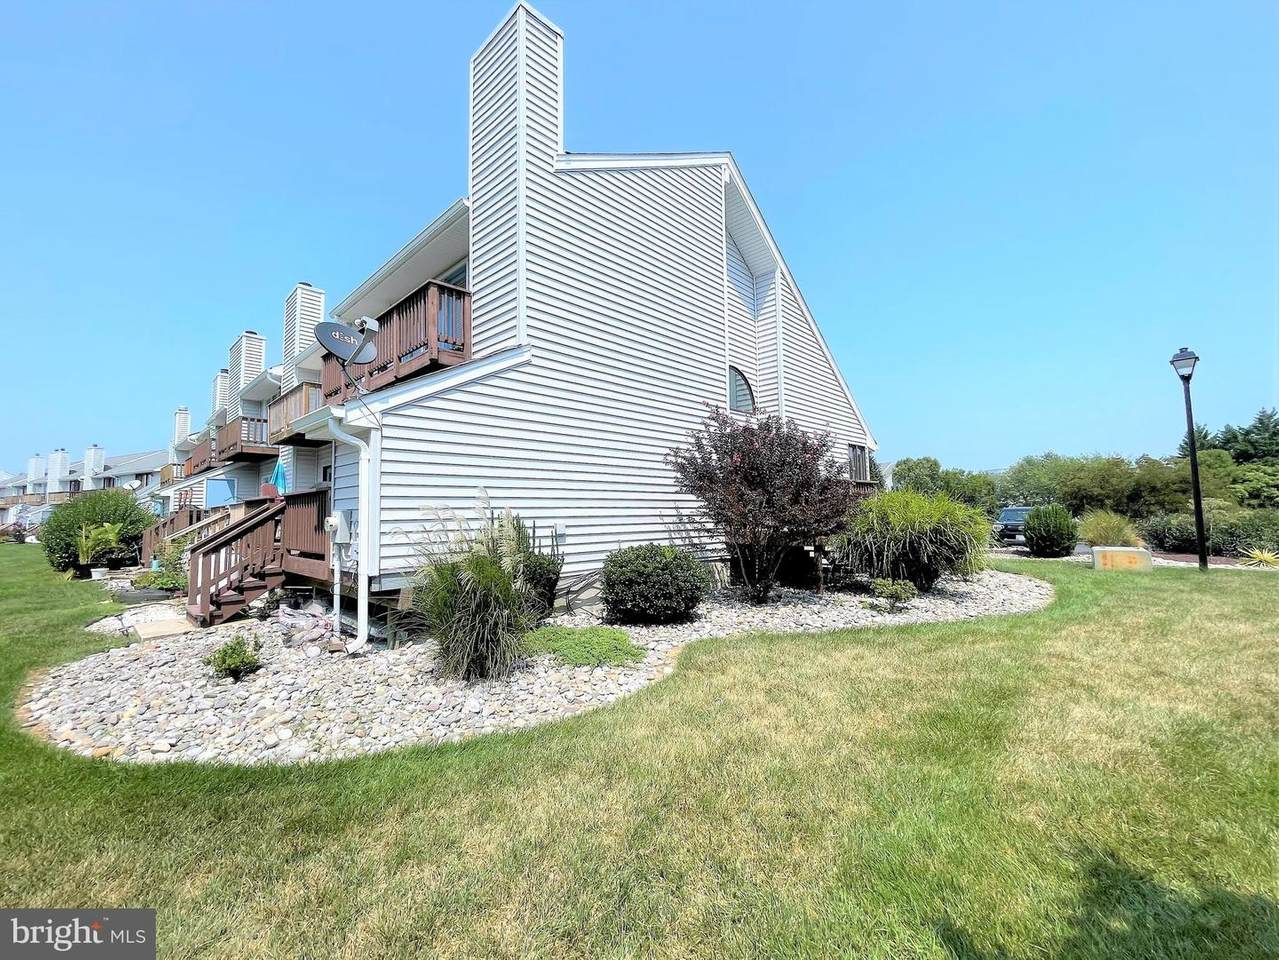 1101 Marion Quimby Drive - Photo 1